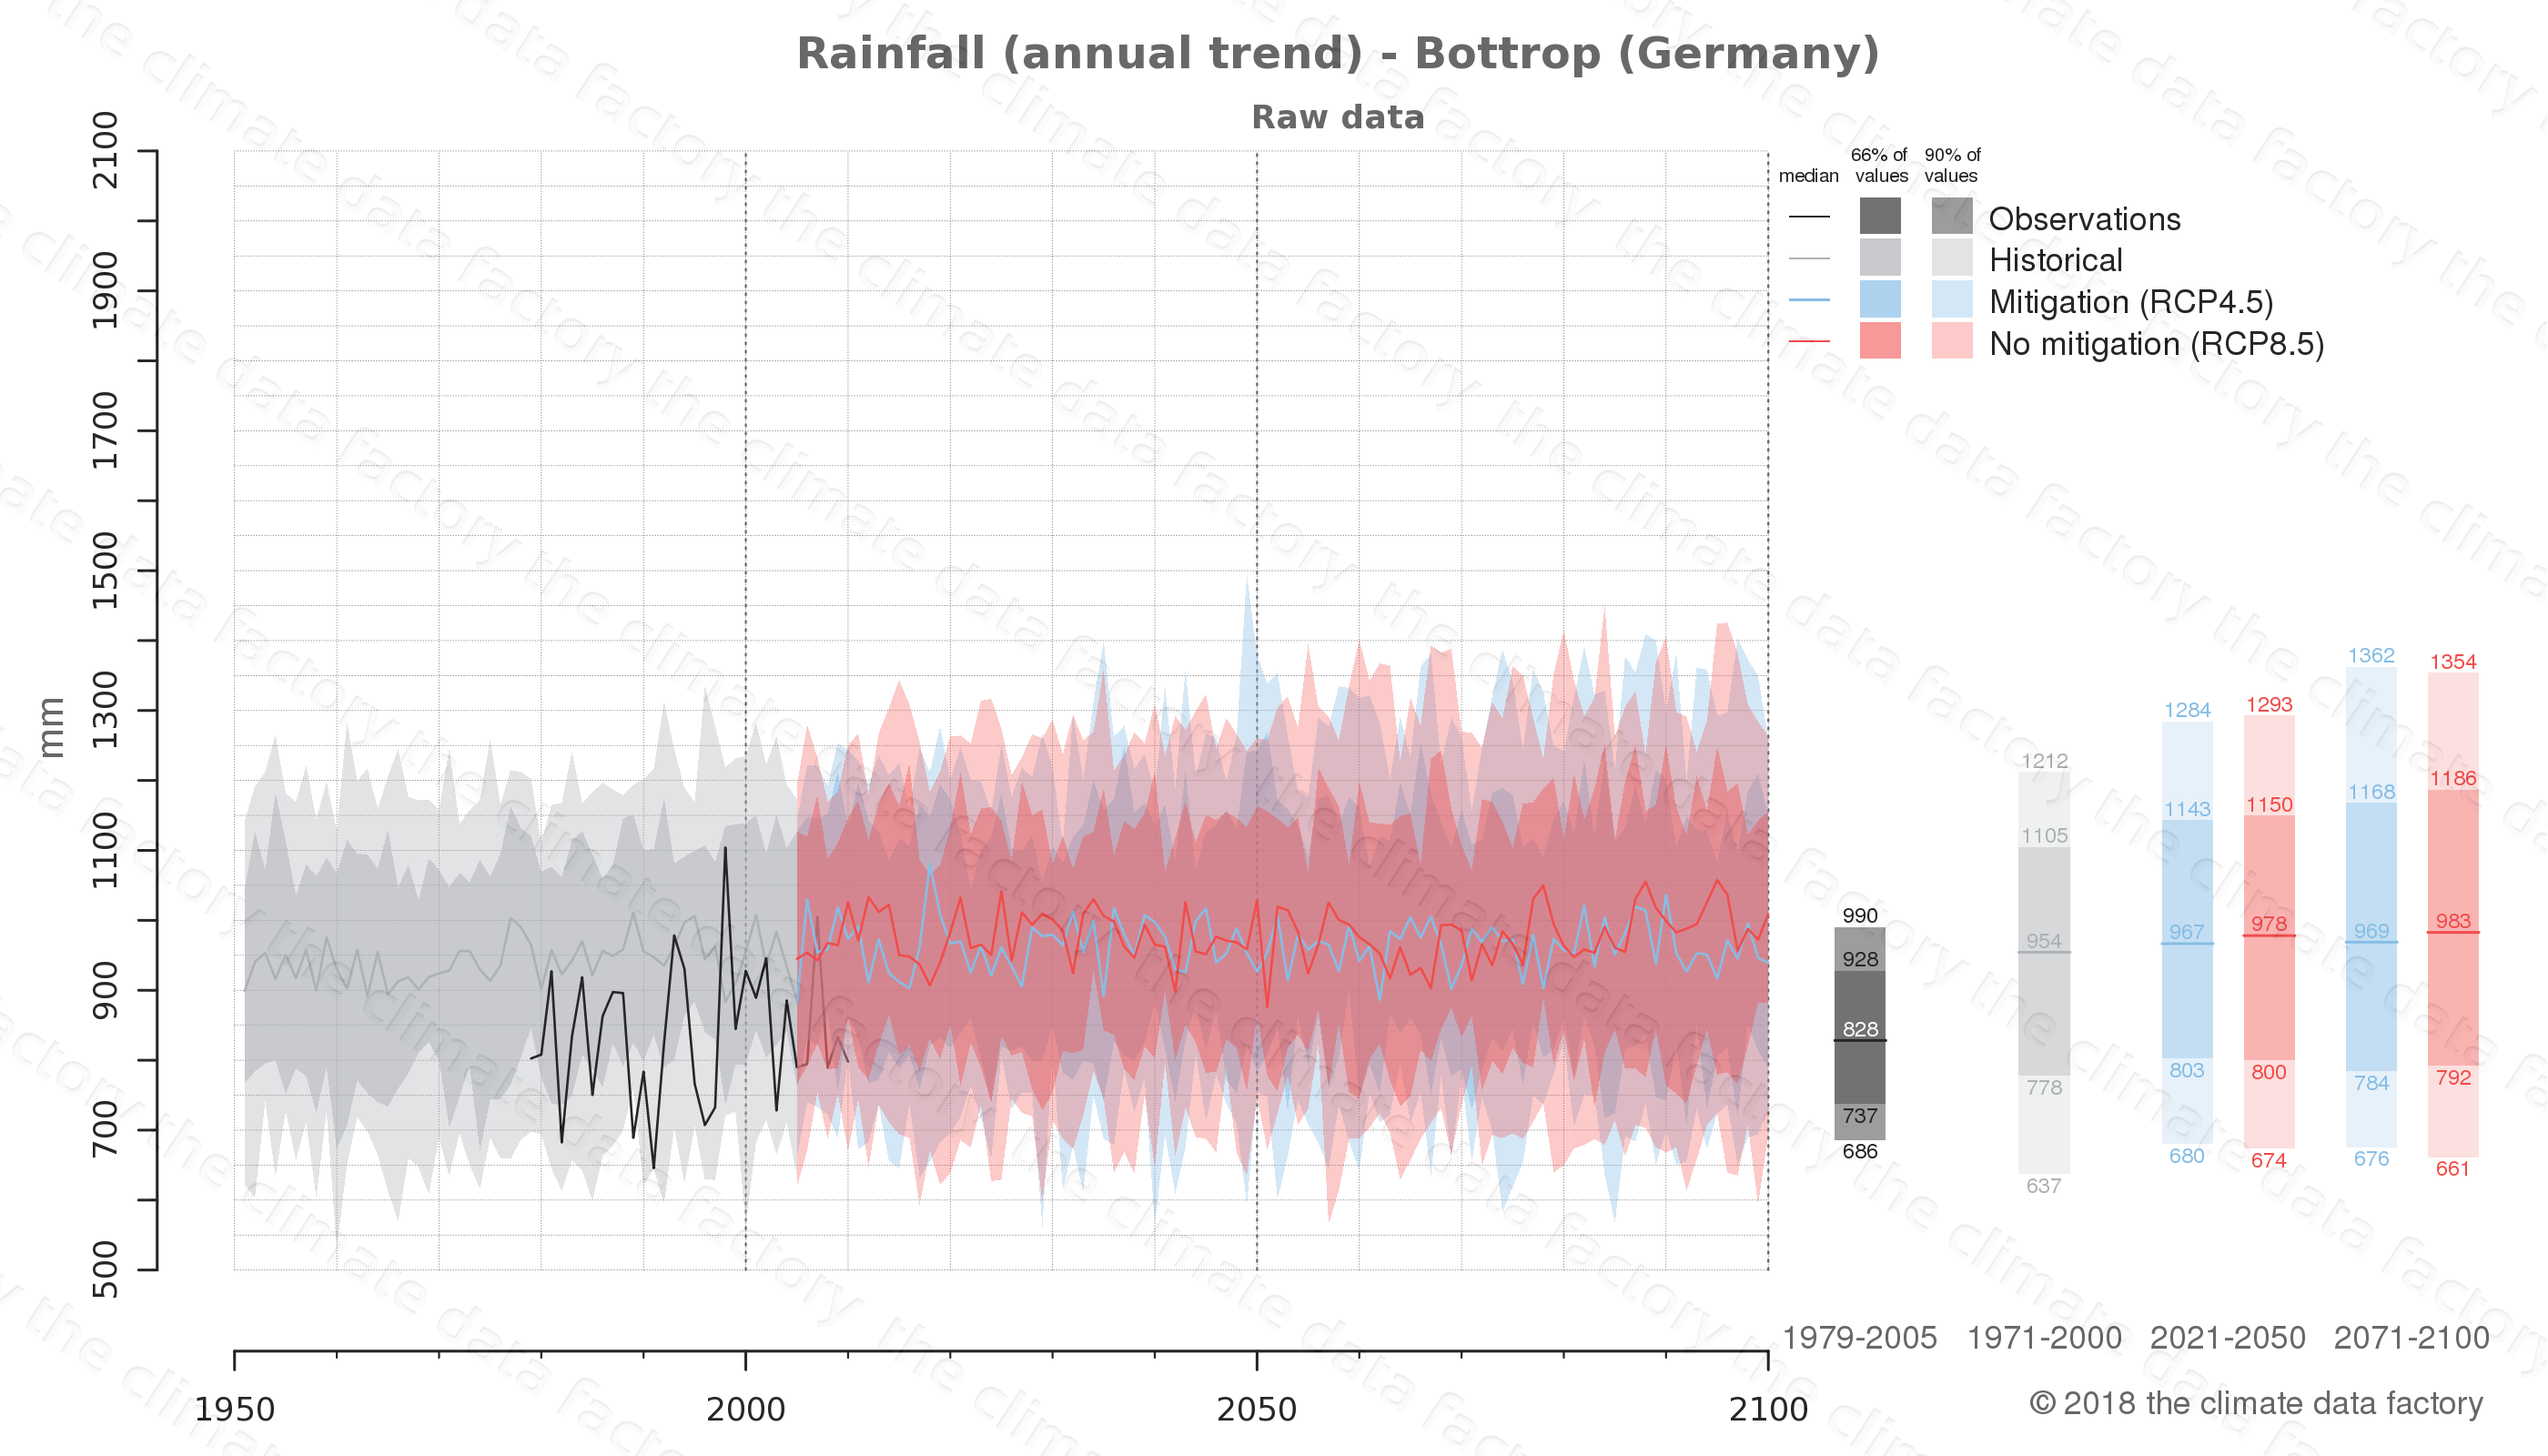 climate change data policy adaptation climate graph city data rainfall bottrop germany